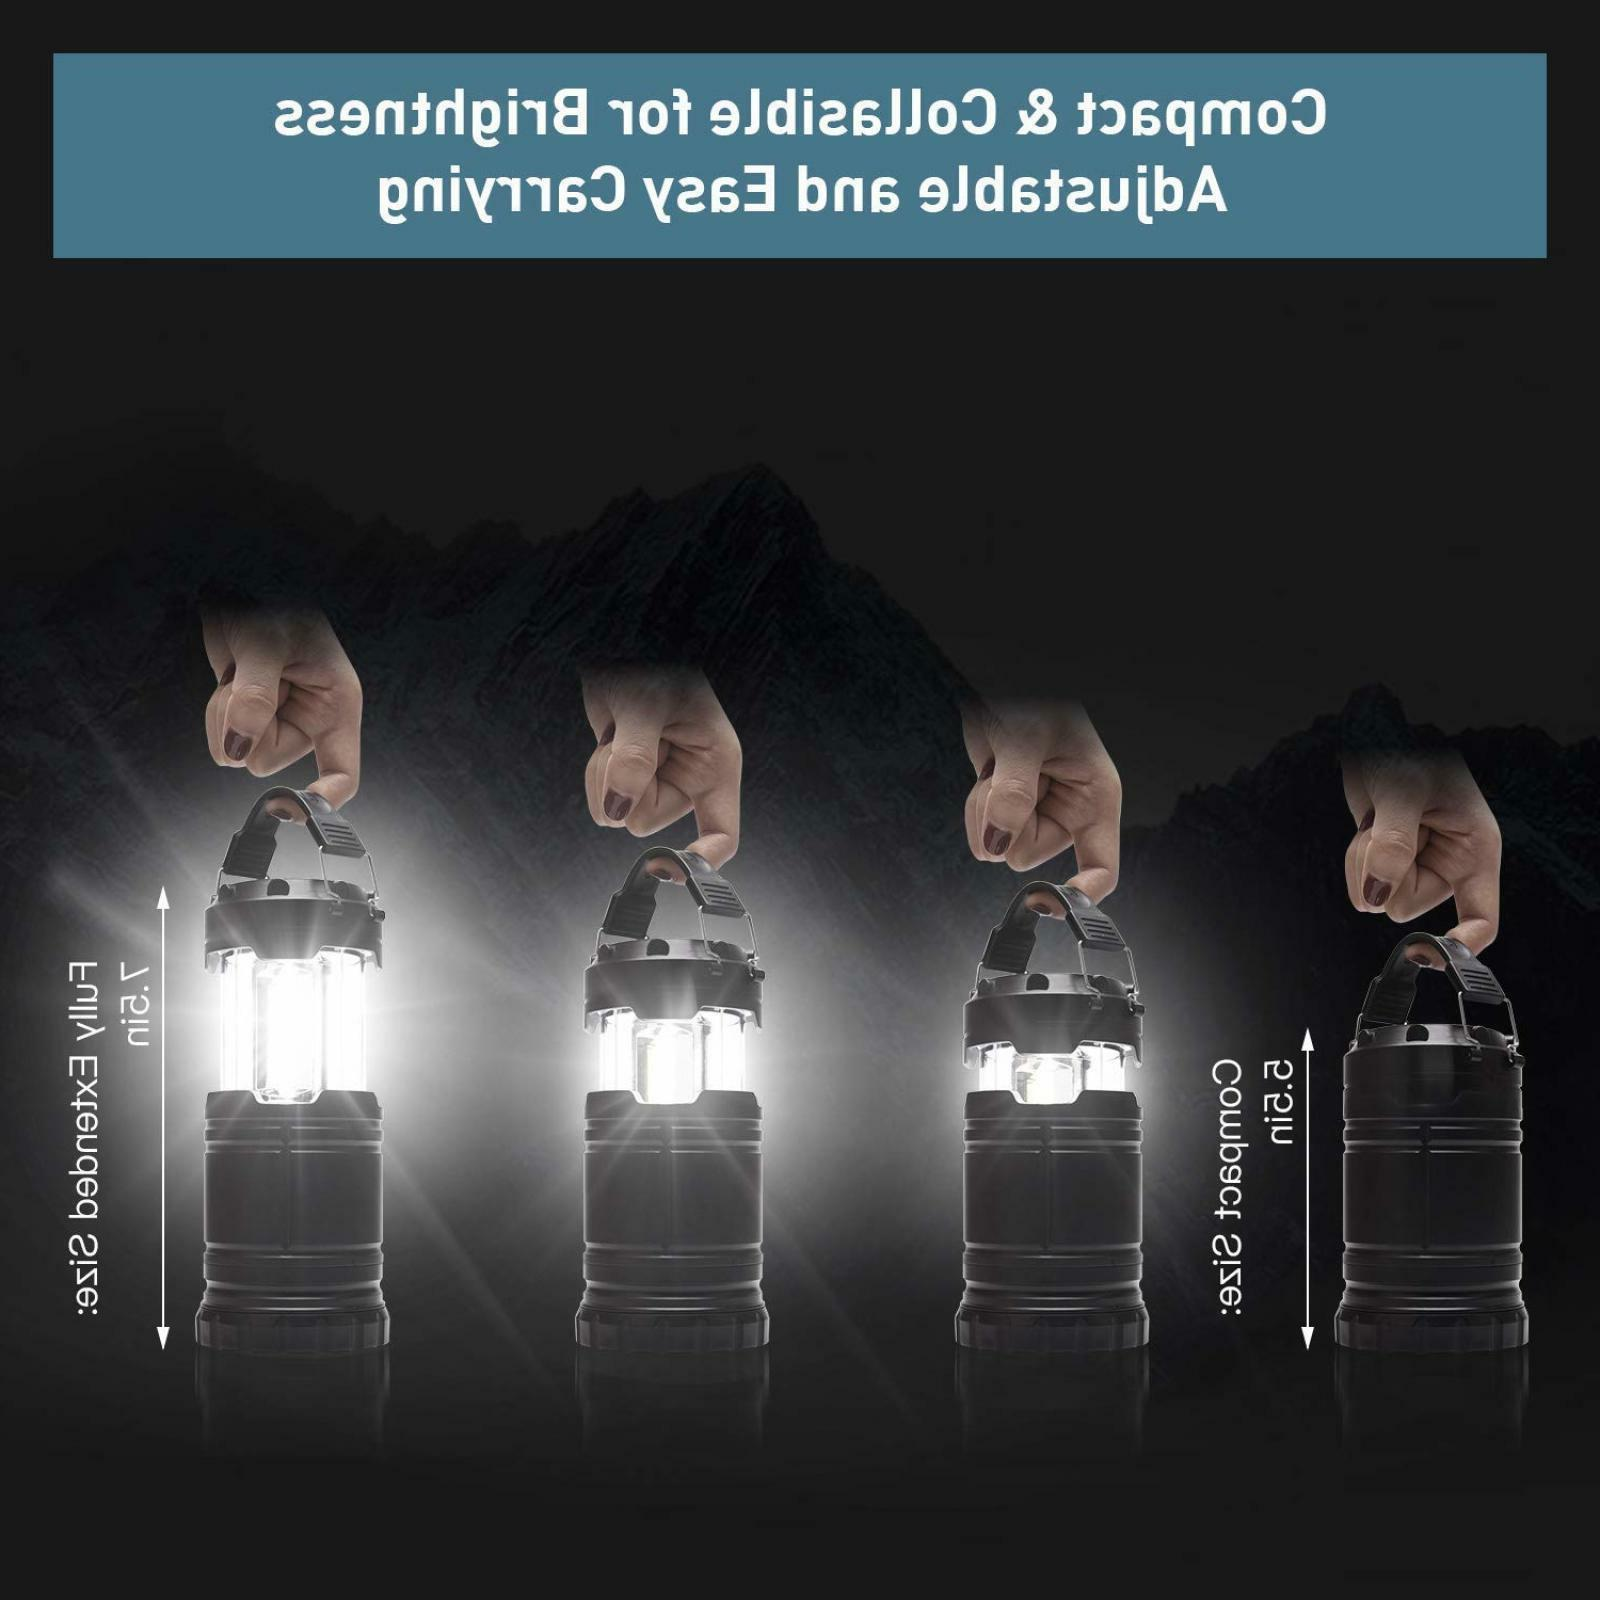 LED Flashlight Handheld Lamp 2 Pack